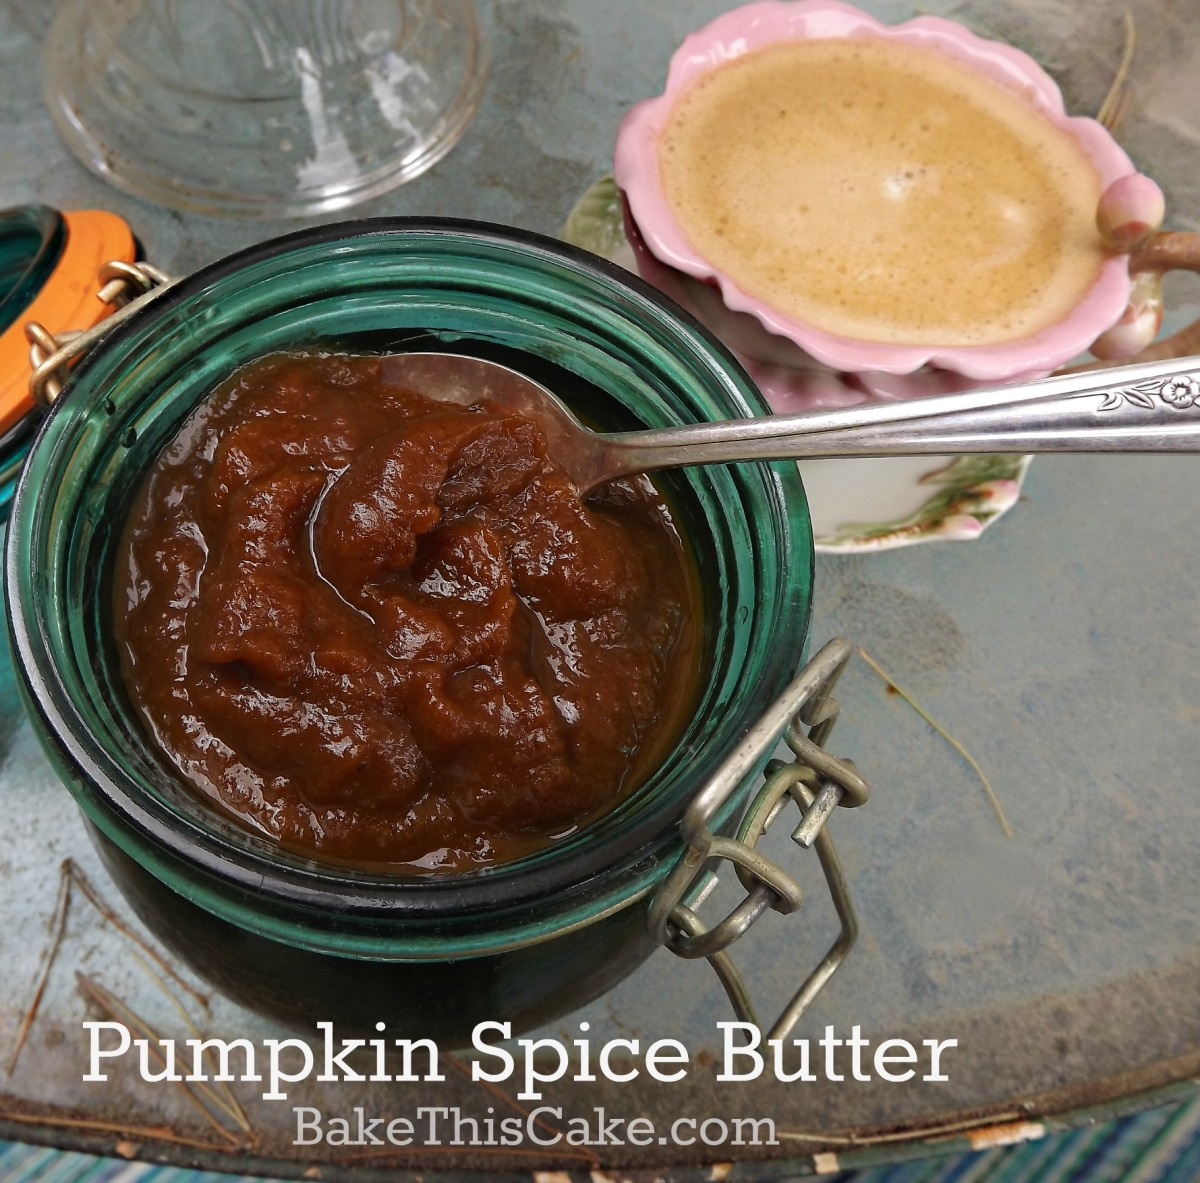 pumpkin spice butter with apple cider by bakethiscake